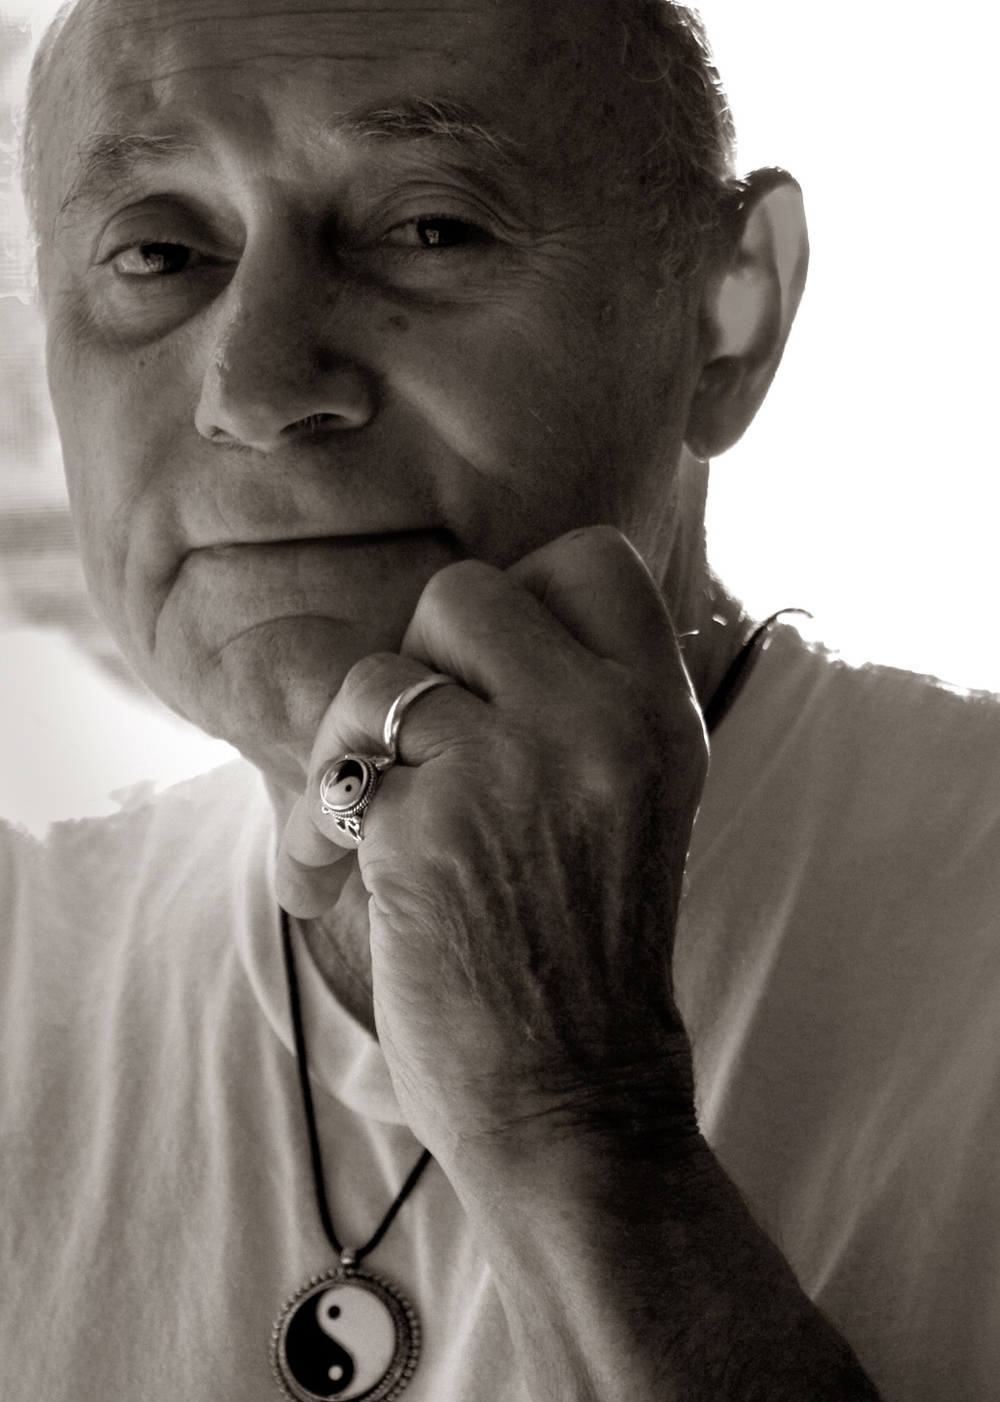 My Grandpa, Joe Lomonico // Taken in 2008 as part of my final project for photojournalism.